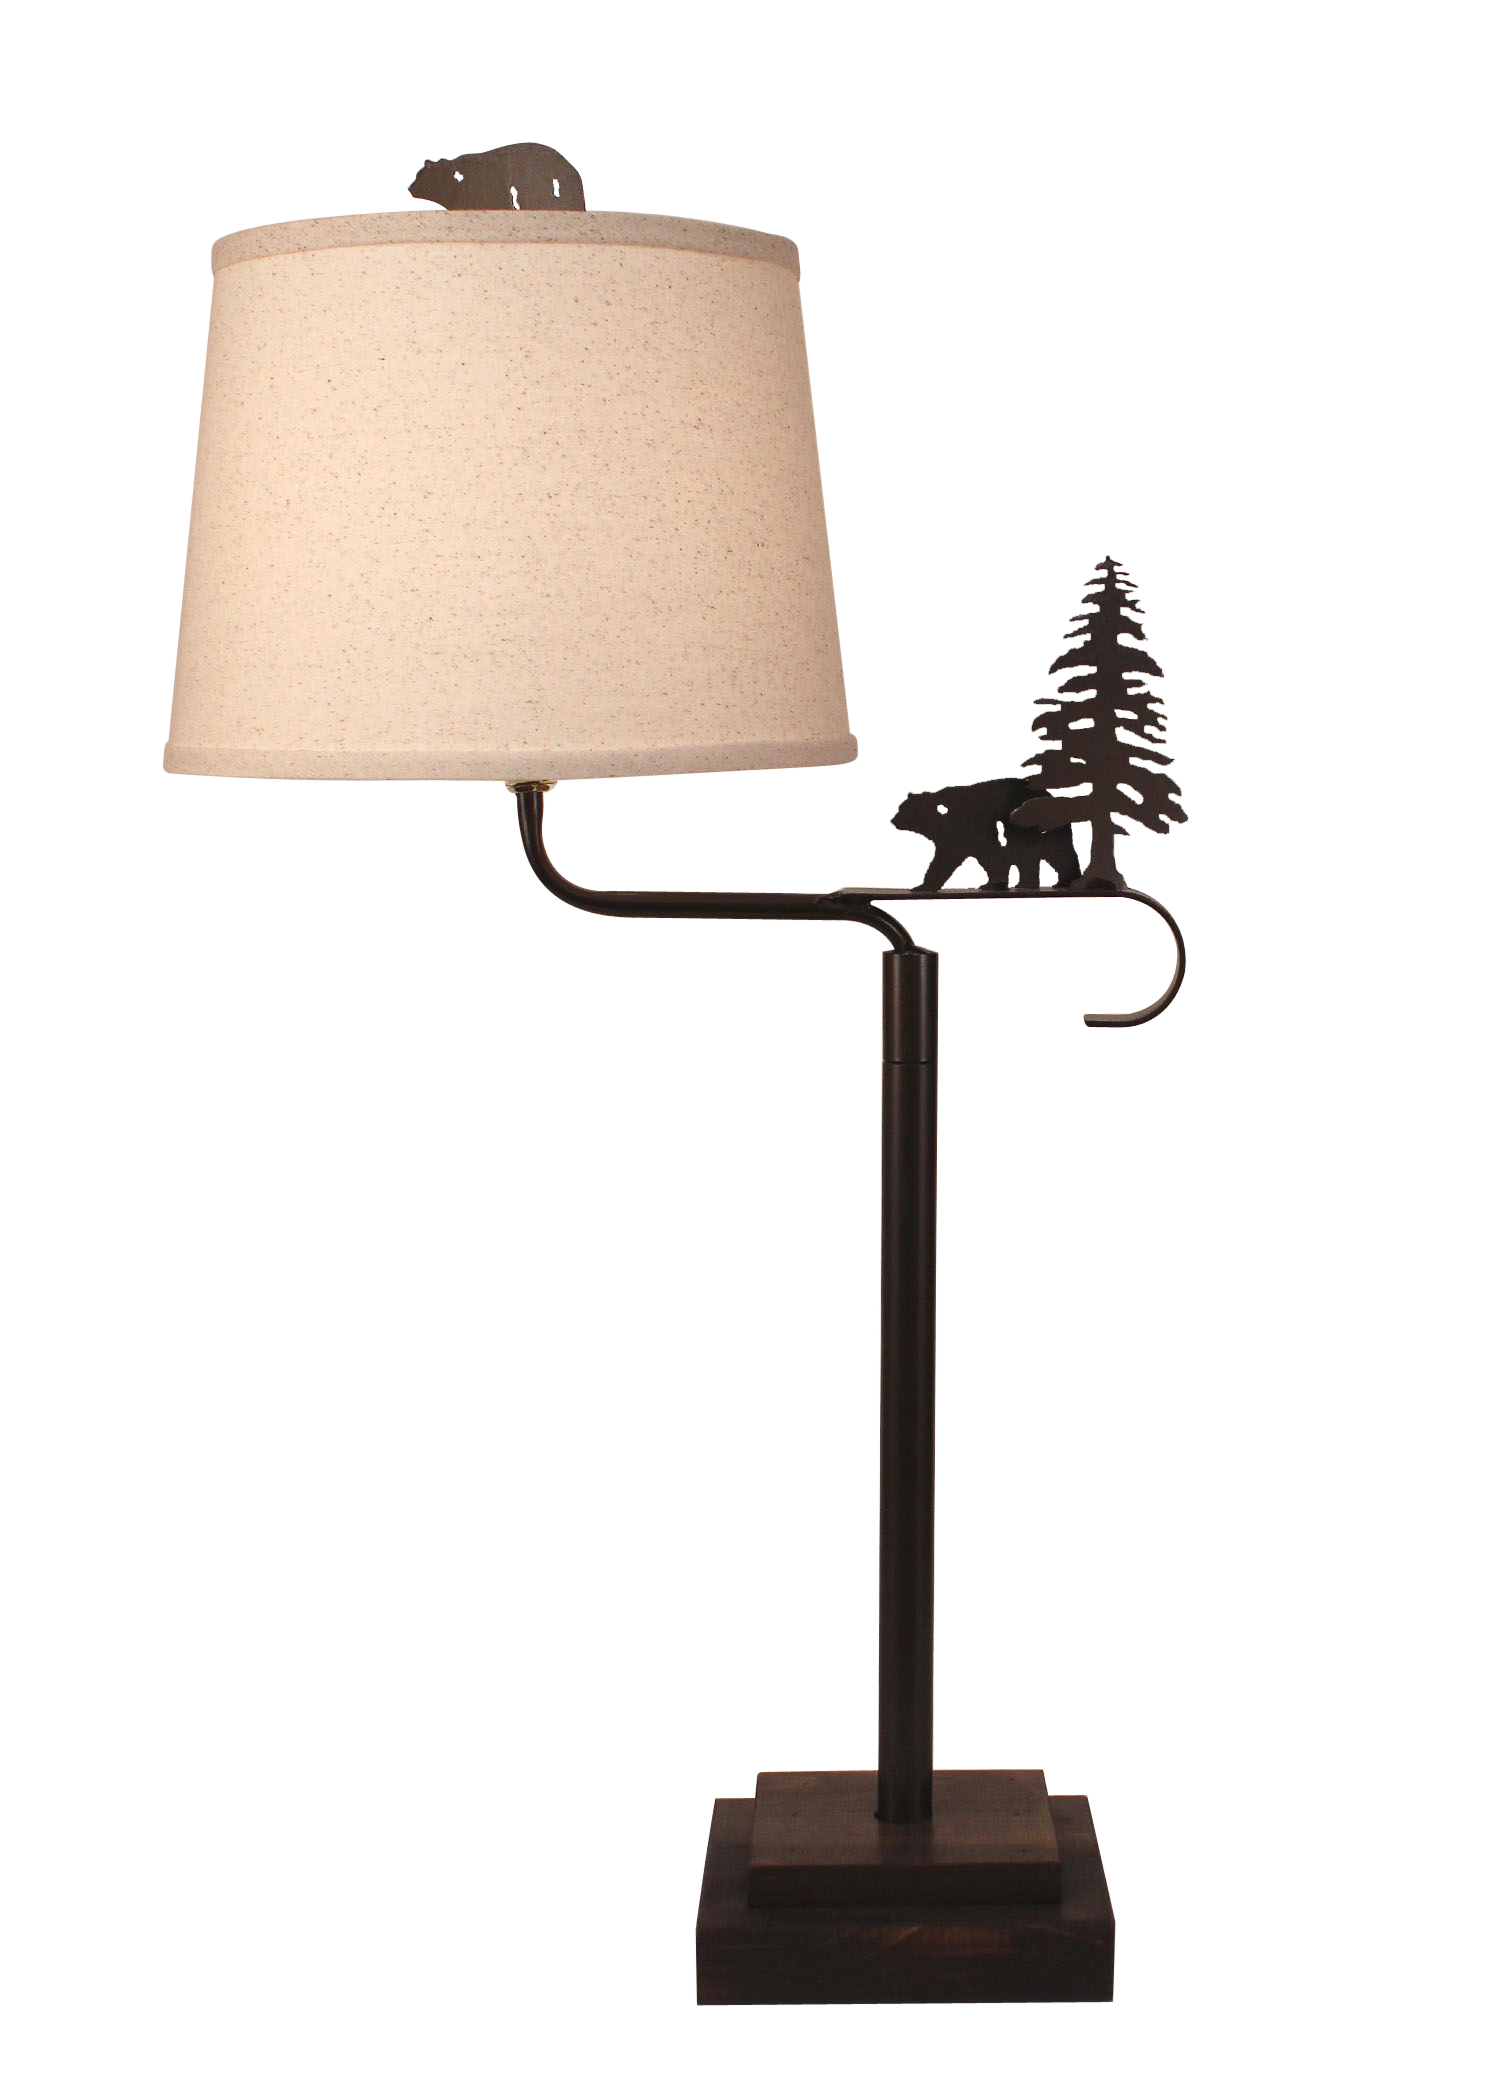 Dark Bronze Iron Swing Arm Table Lamp with Wooden Base- Bear and Pine Tree Accent - Coast Lamp Shop